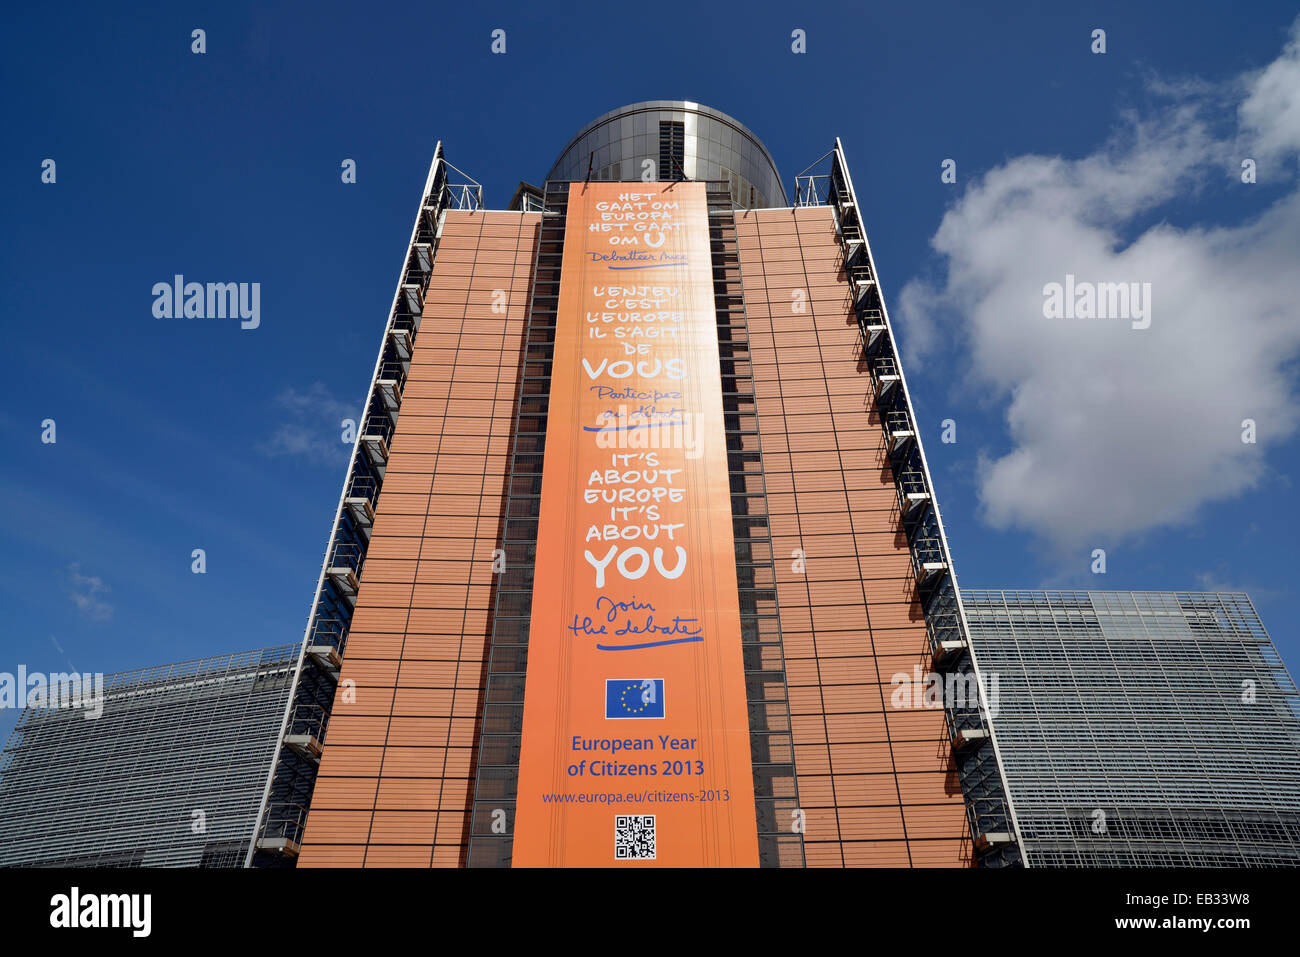 European Commission, Berlaymont building, Brussels, Brussels Region, Belgium - Stock Image